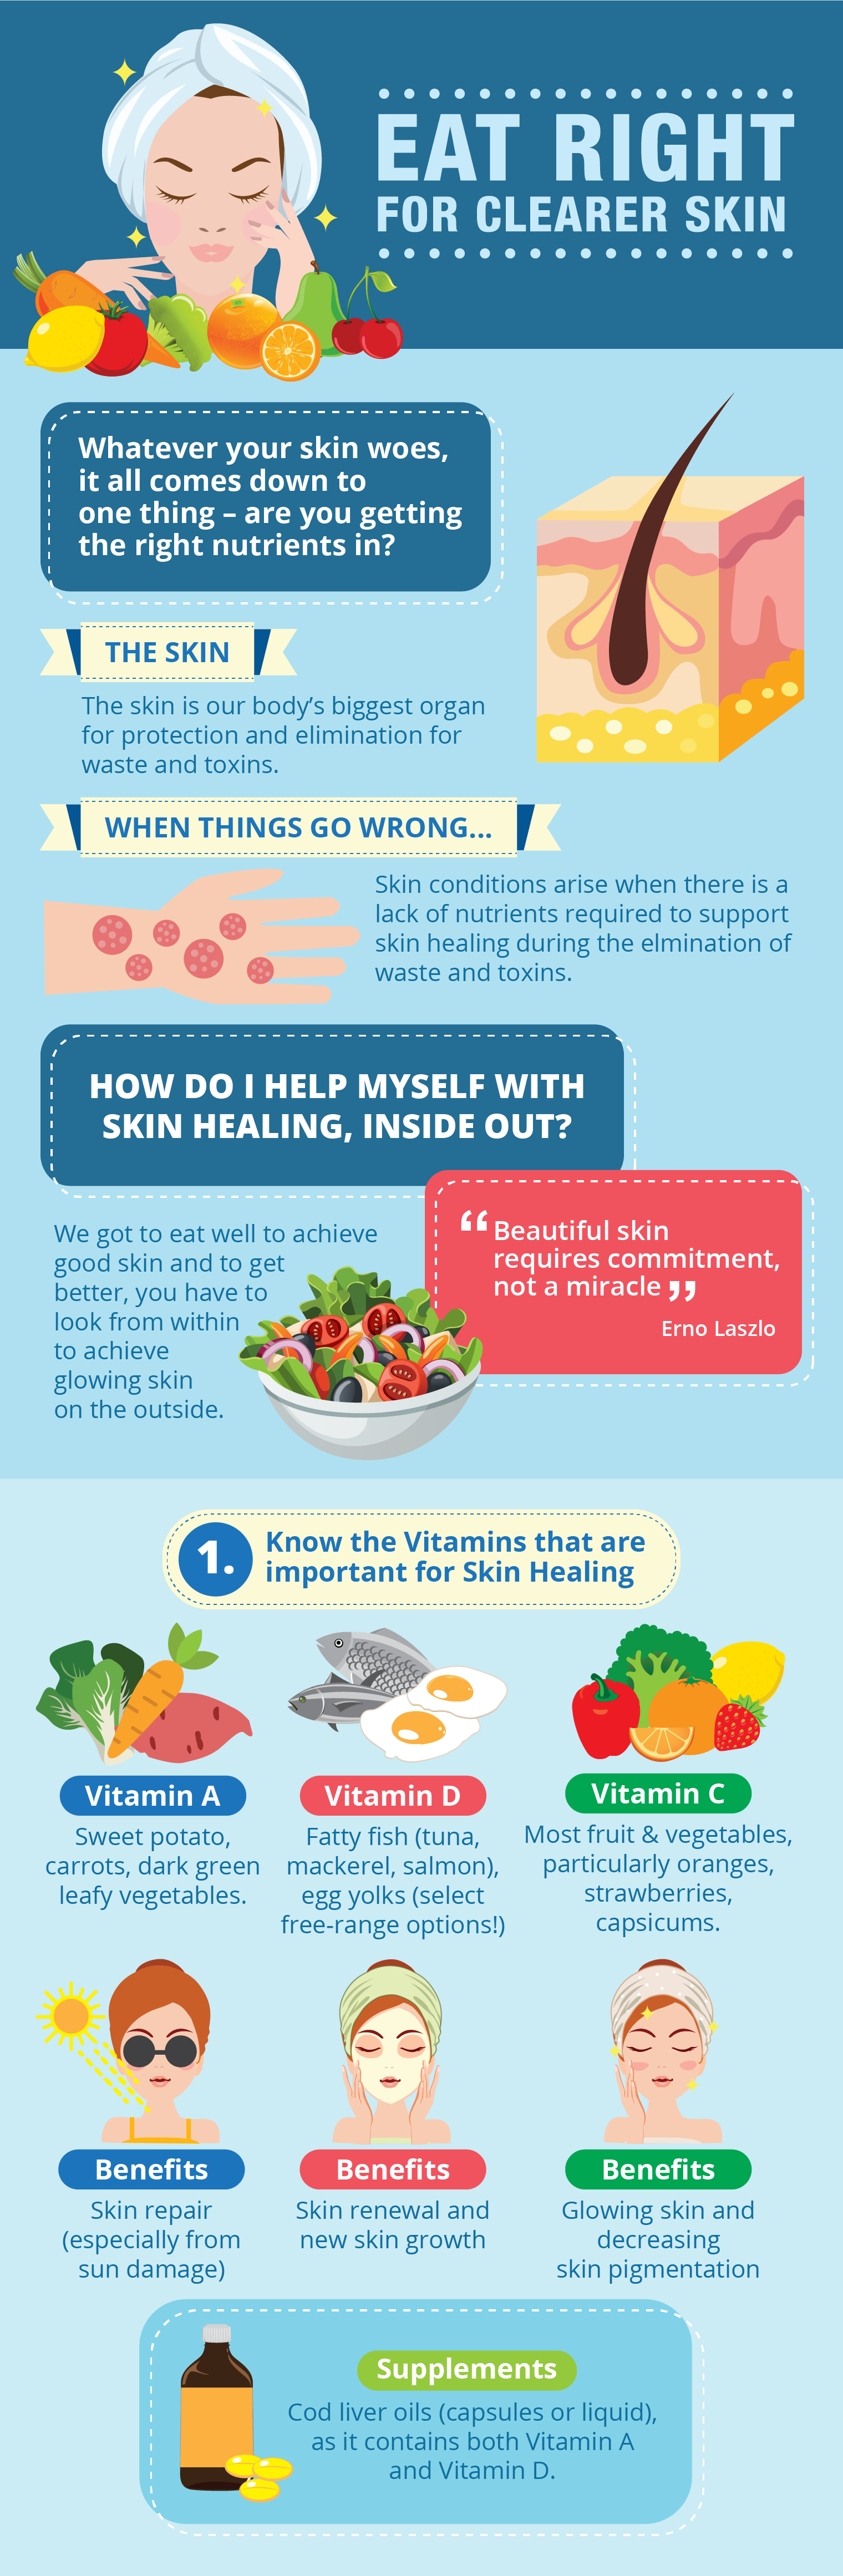 Eat Right For Clearer Skin